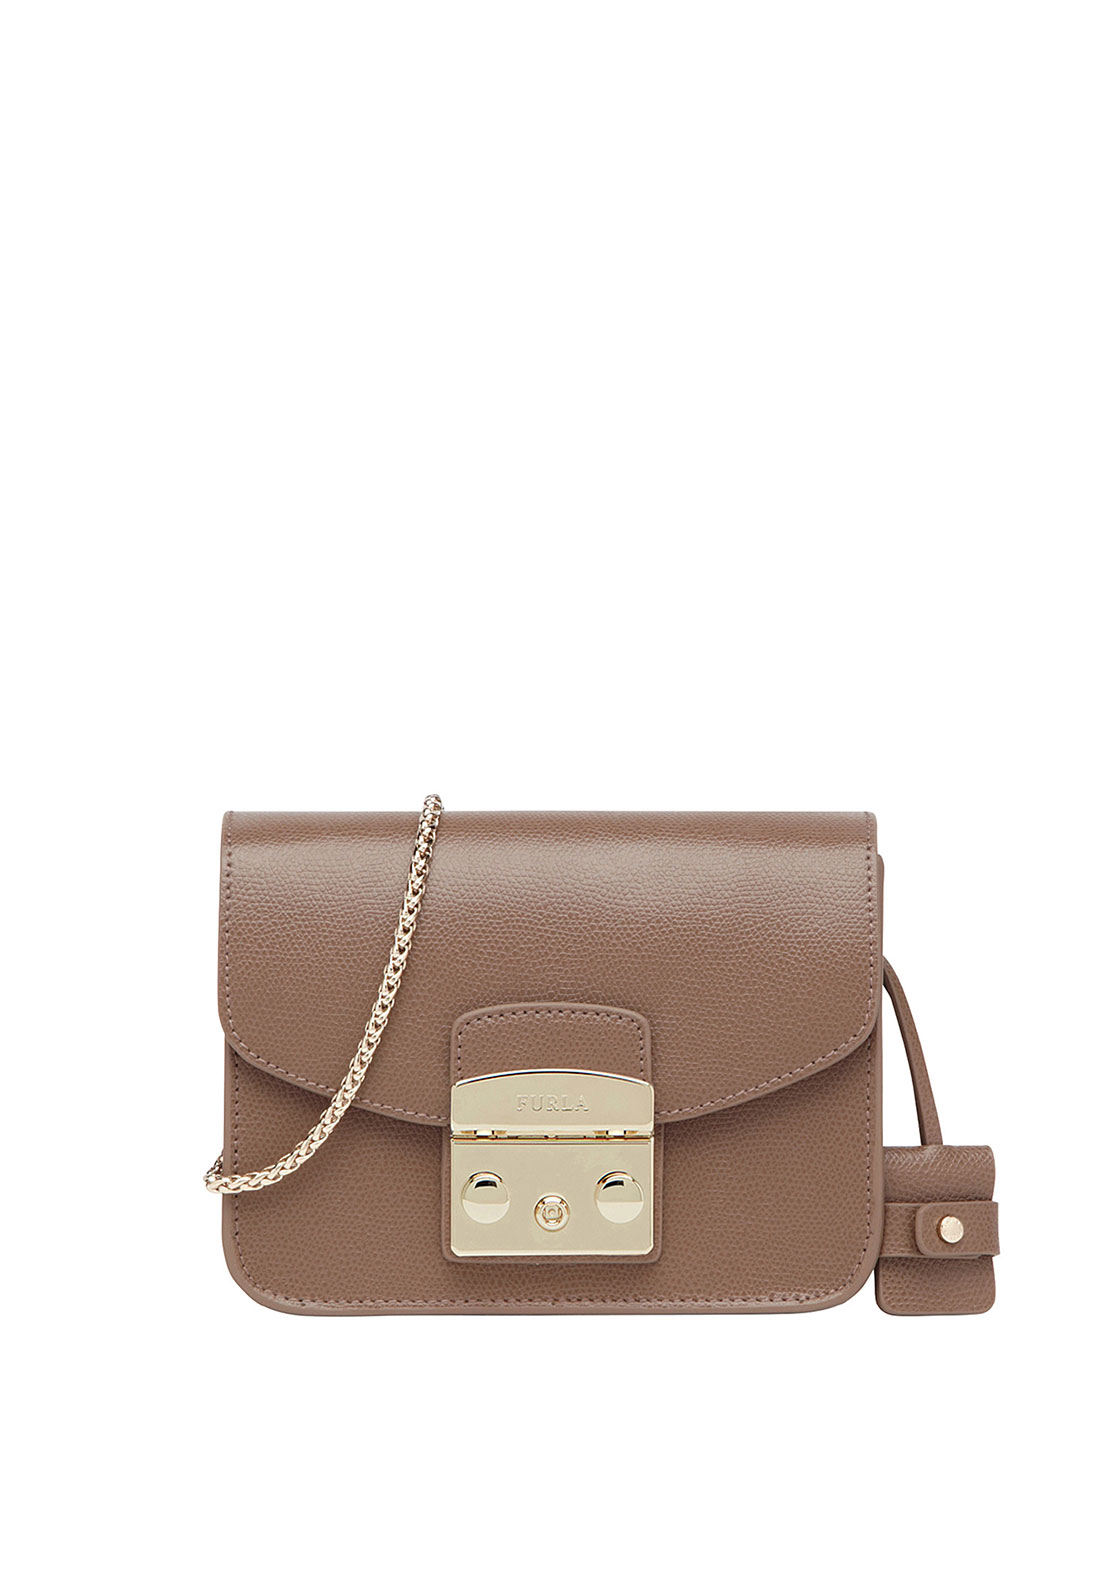 Furla Metropolis Leather Crossbody Mini Bag, Brown